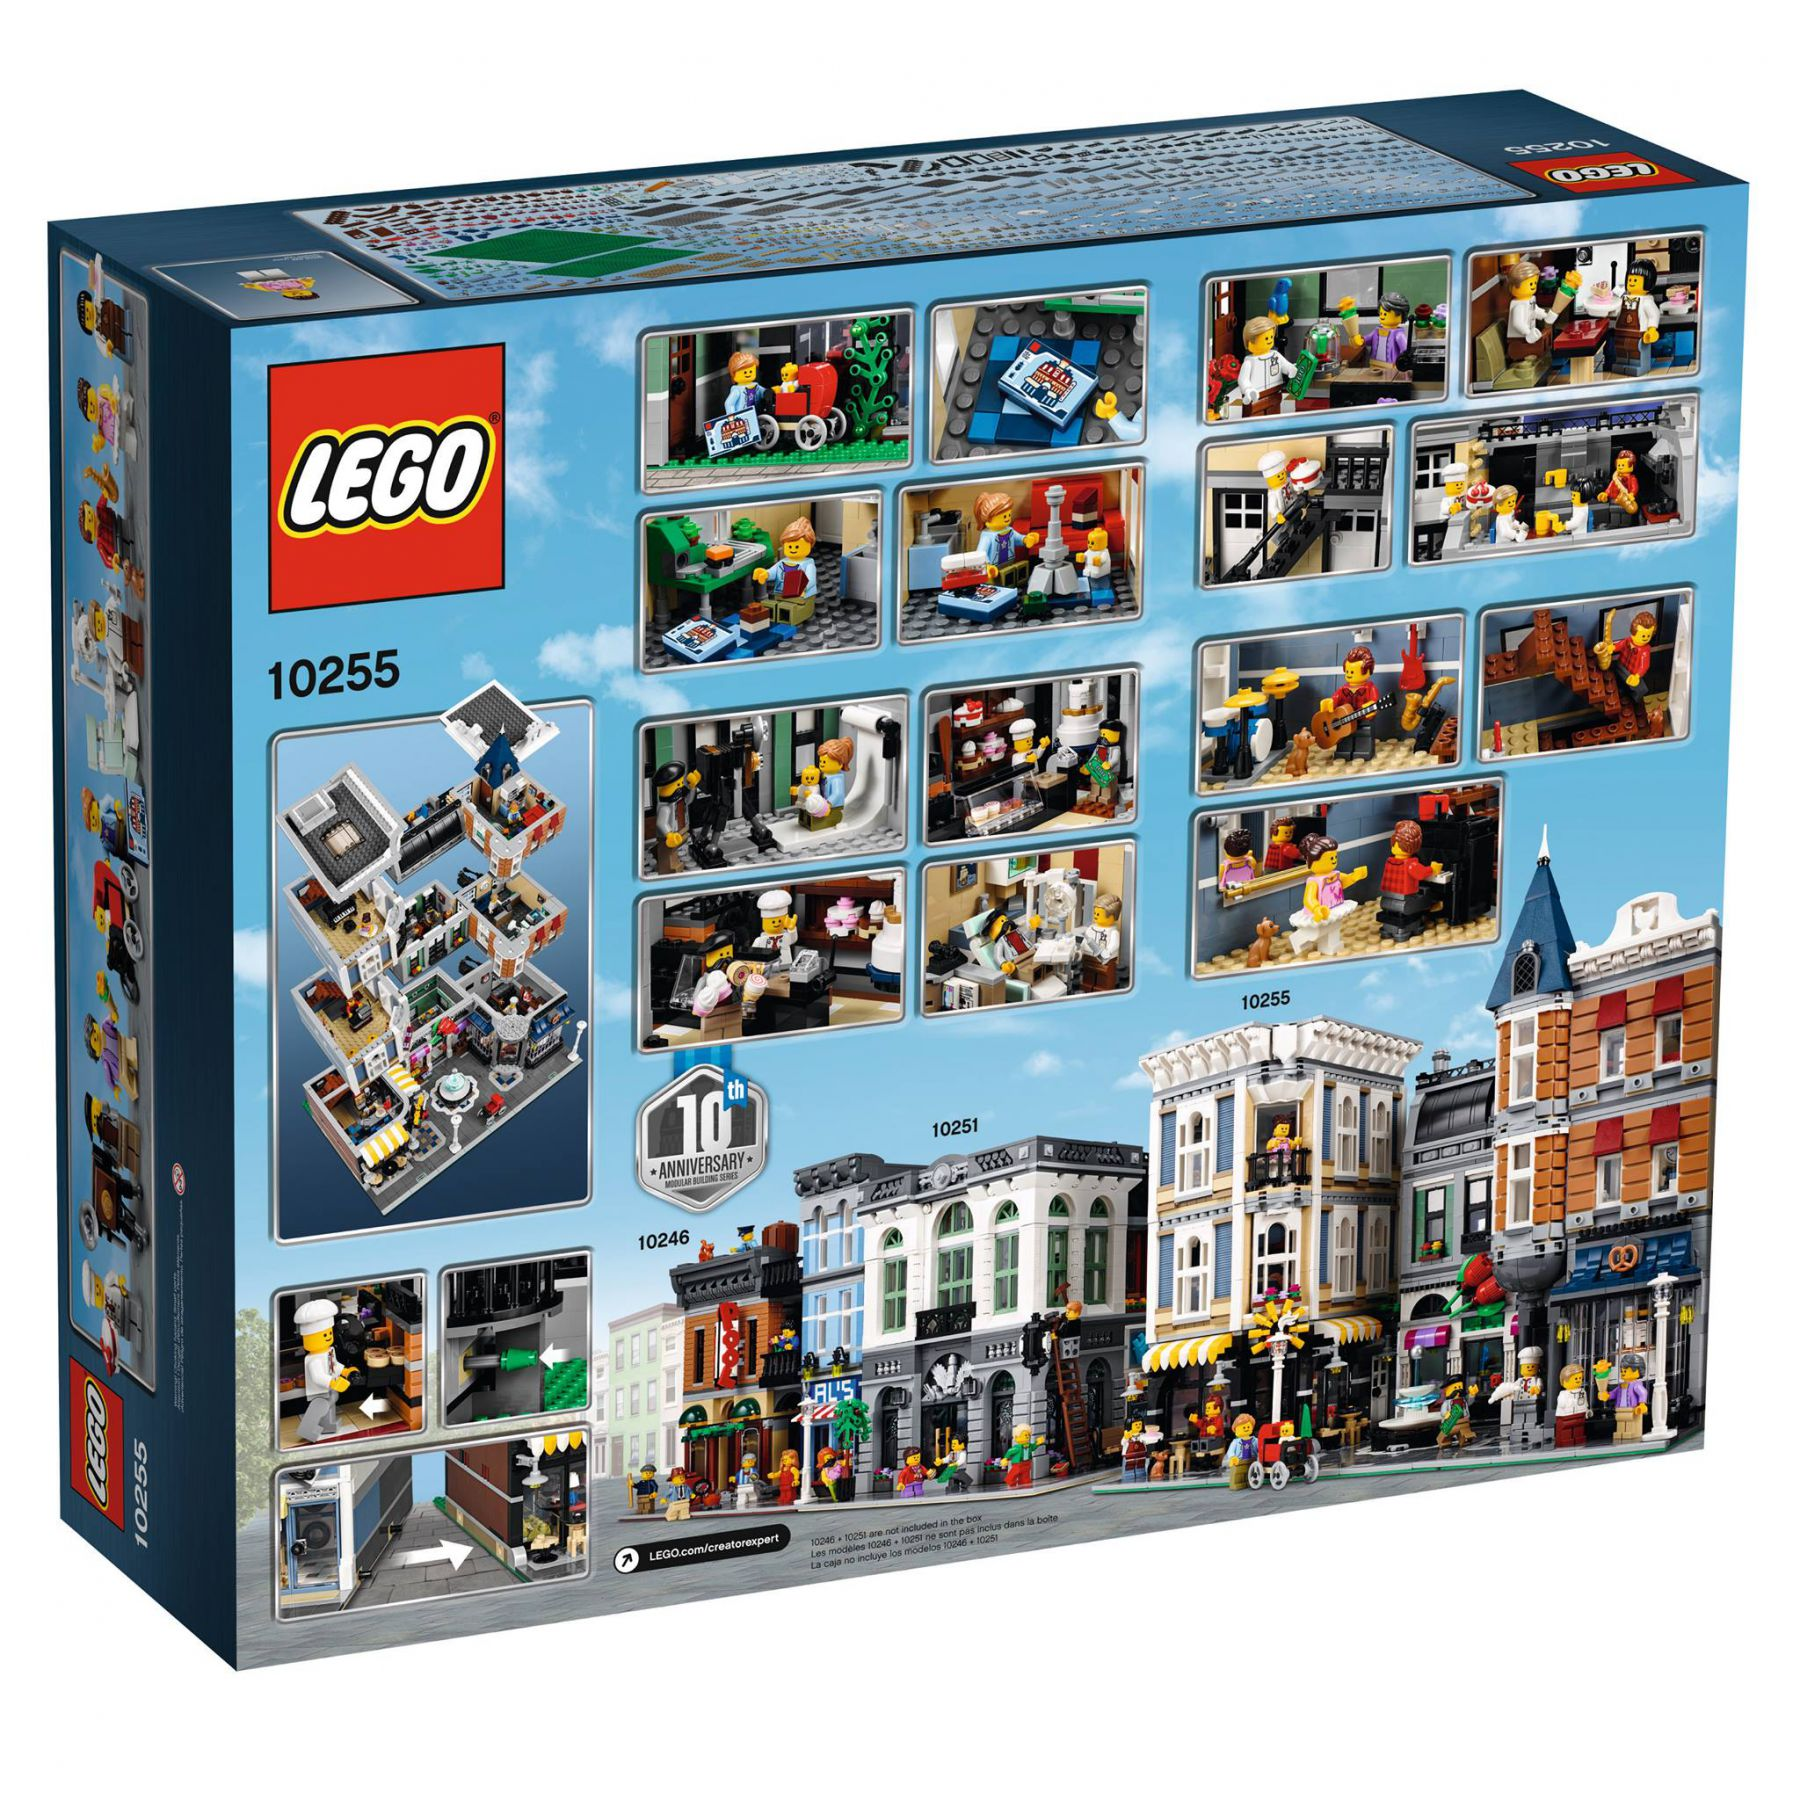 LEGO Advanced Models 10255 Assembly Square / Stadtleben LEGO_10255_box-back.jpg